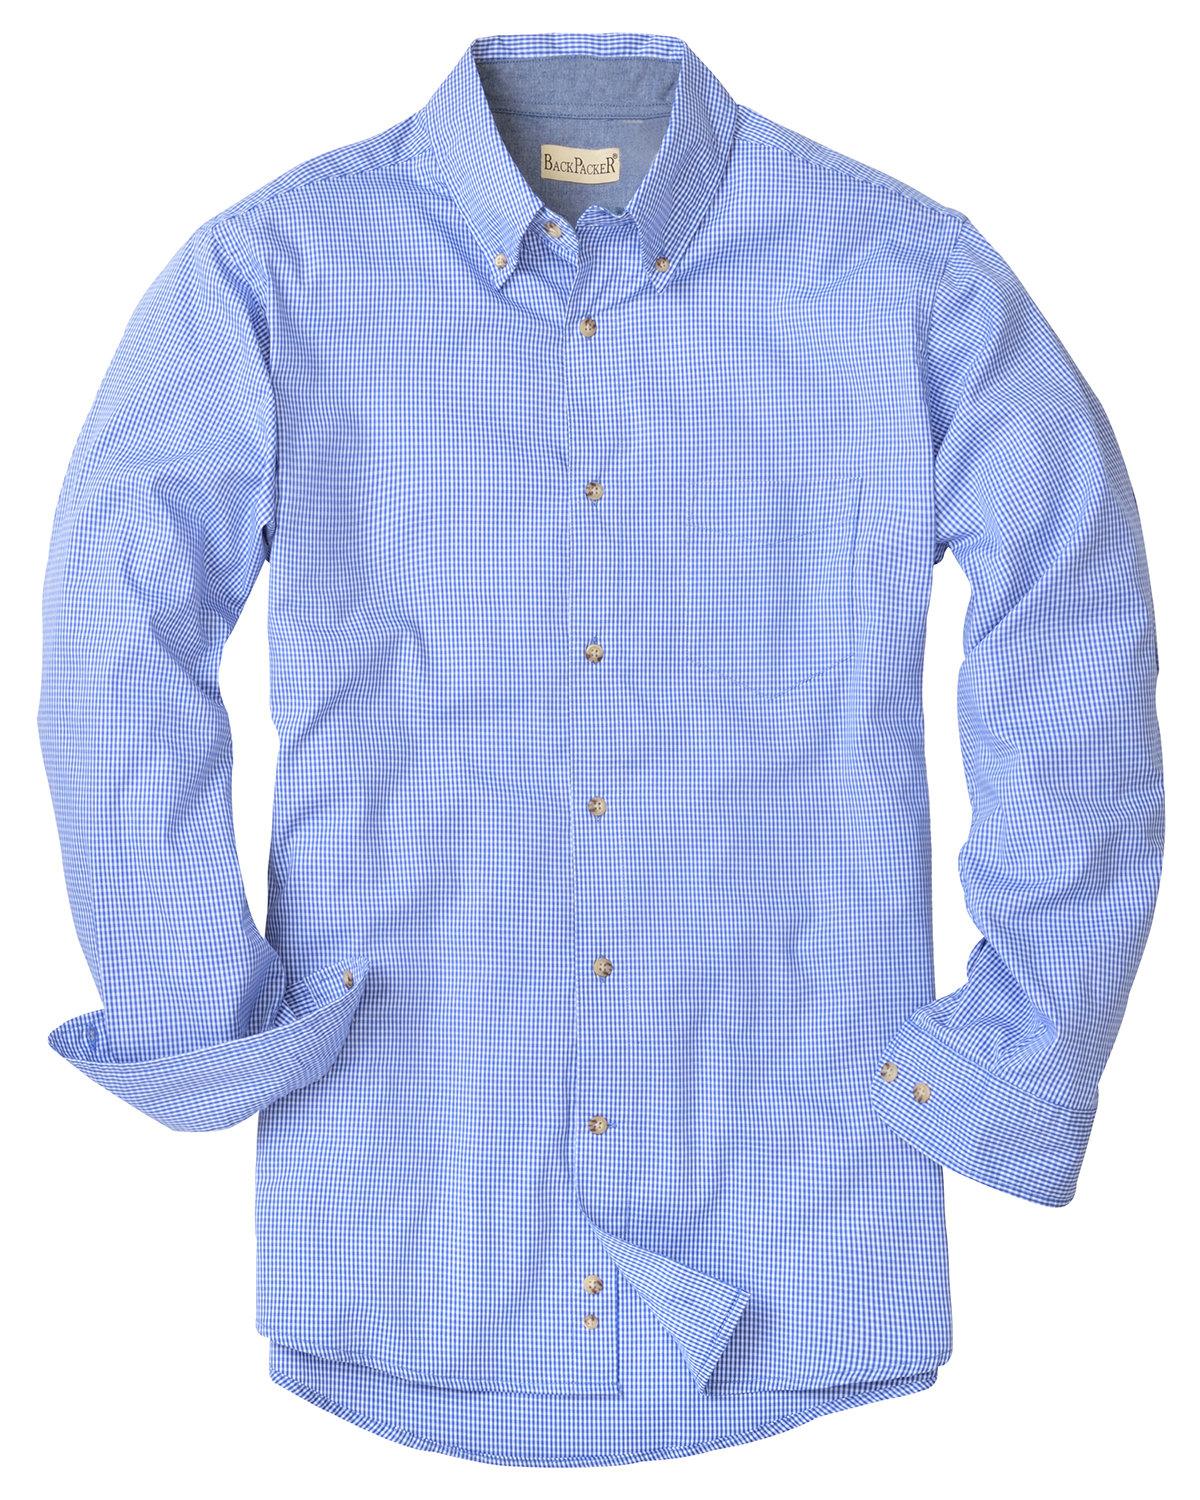 Backpacker Men's Yarn-Dyed Micro-Check Woven FRENCH BLUE